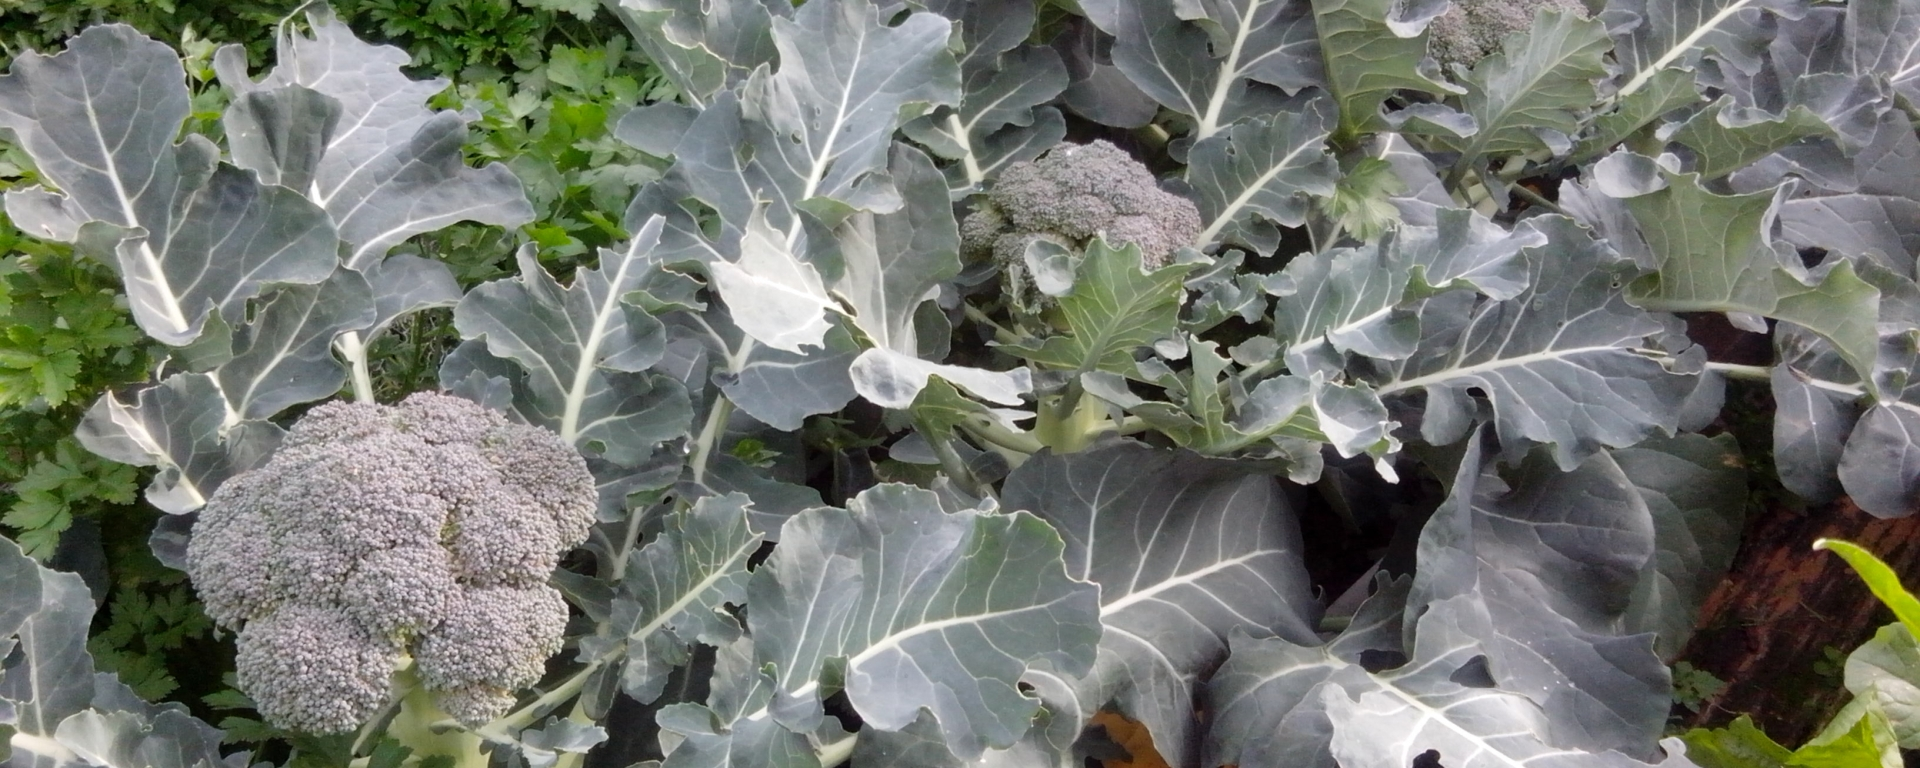 how to grow your own broccoli